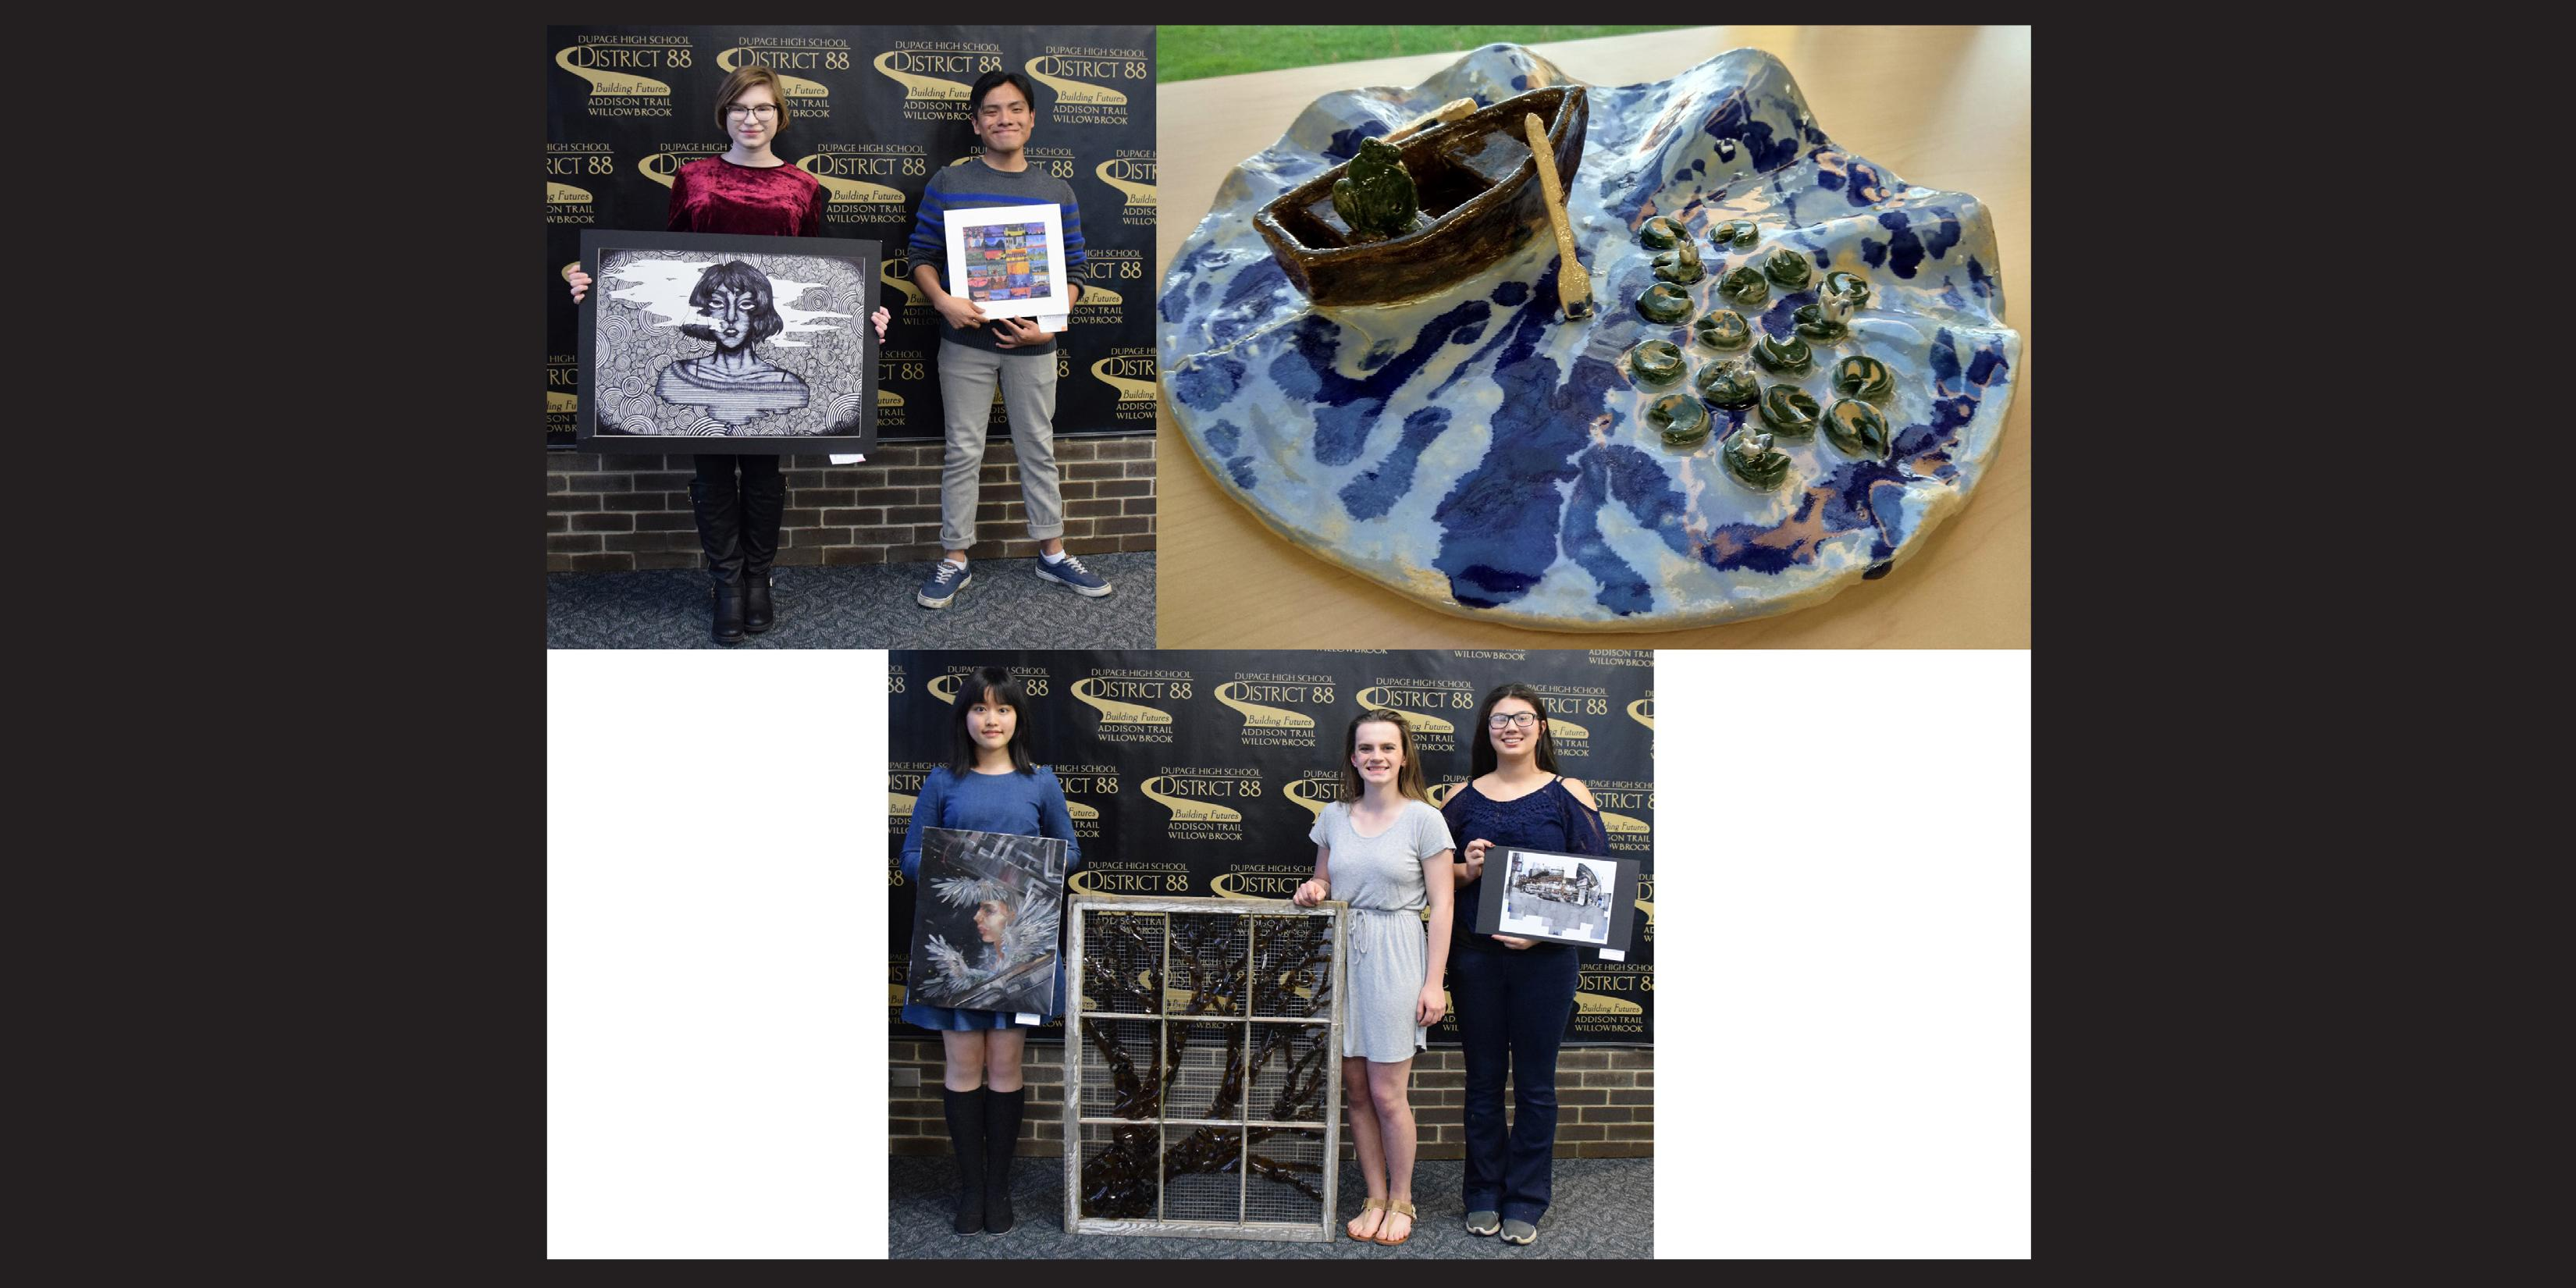 Six District 88 students named as District 88 Art Scholarship recipients